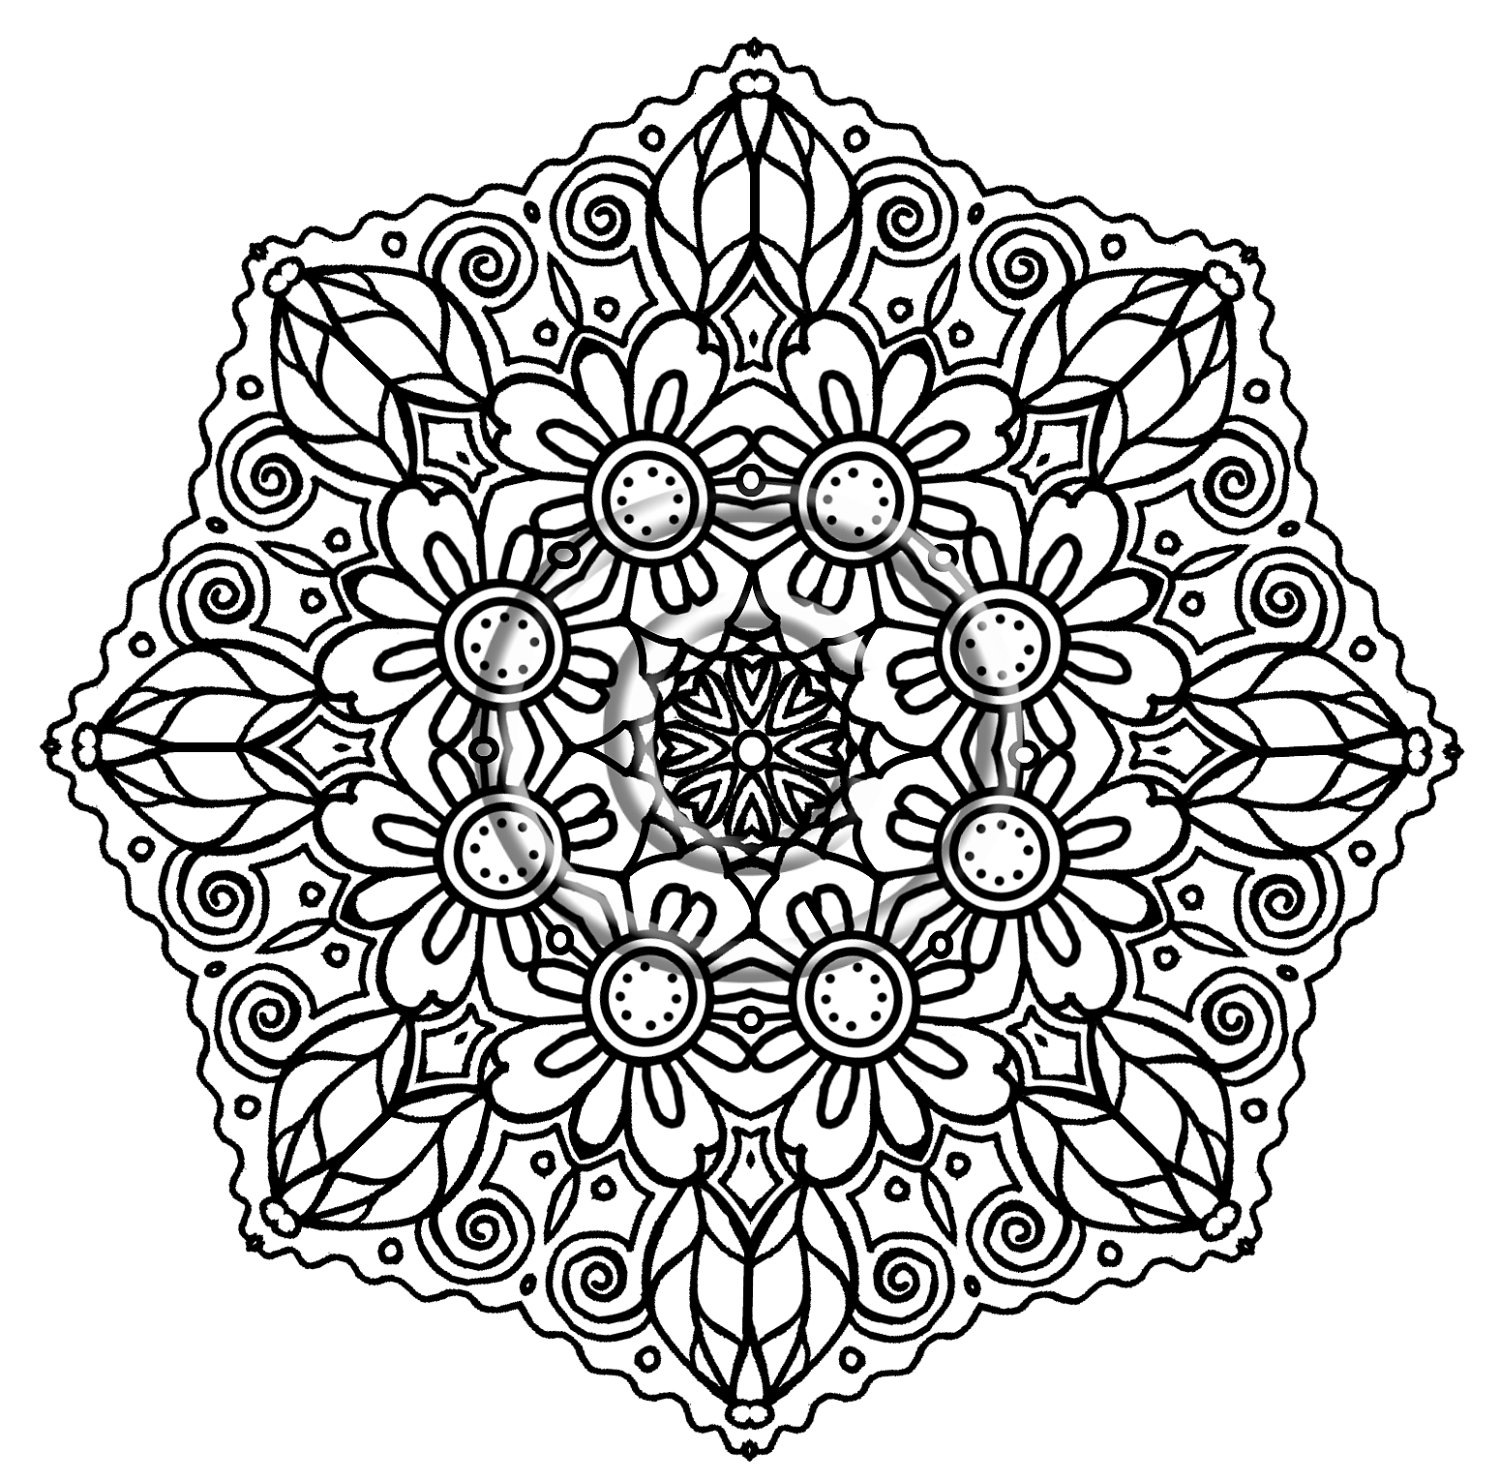 Detailed flower coloring pages